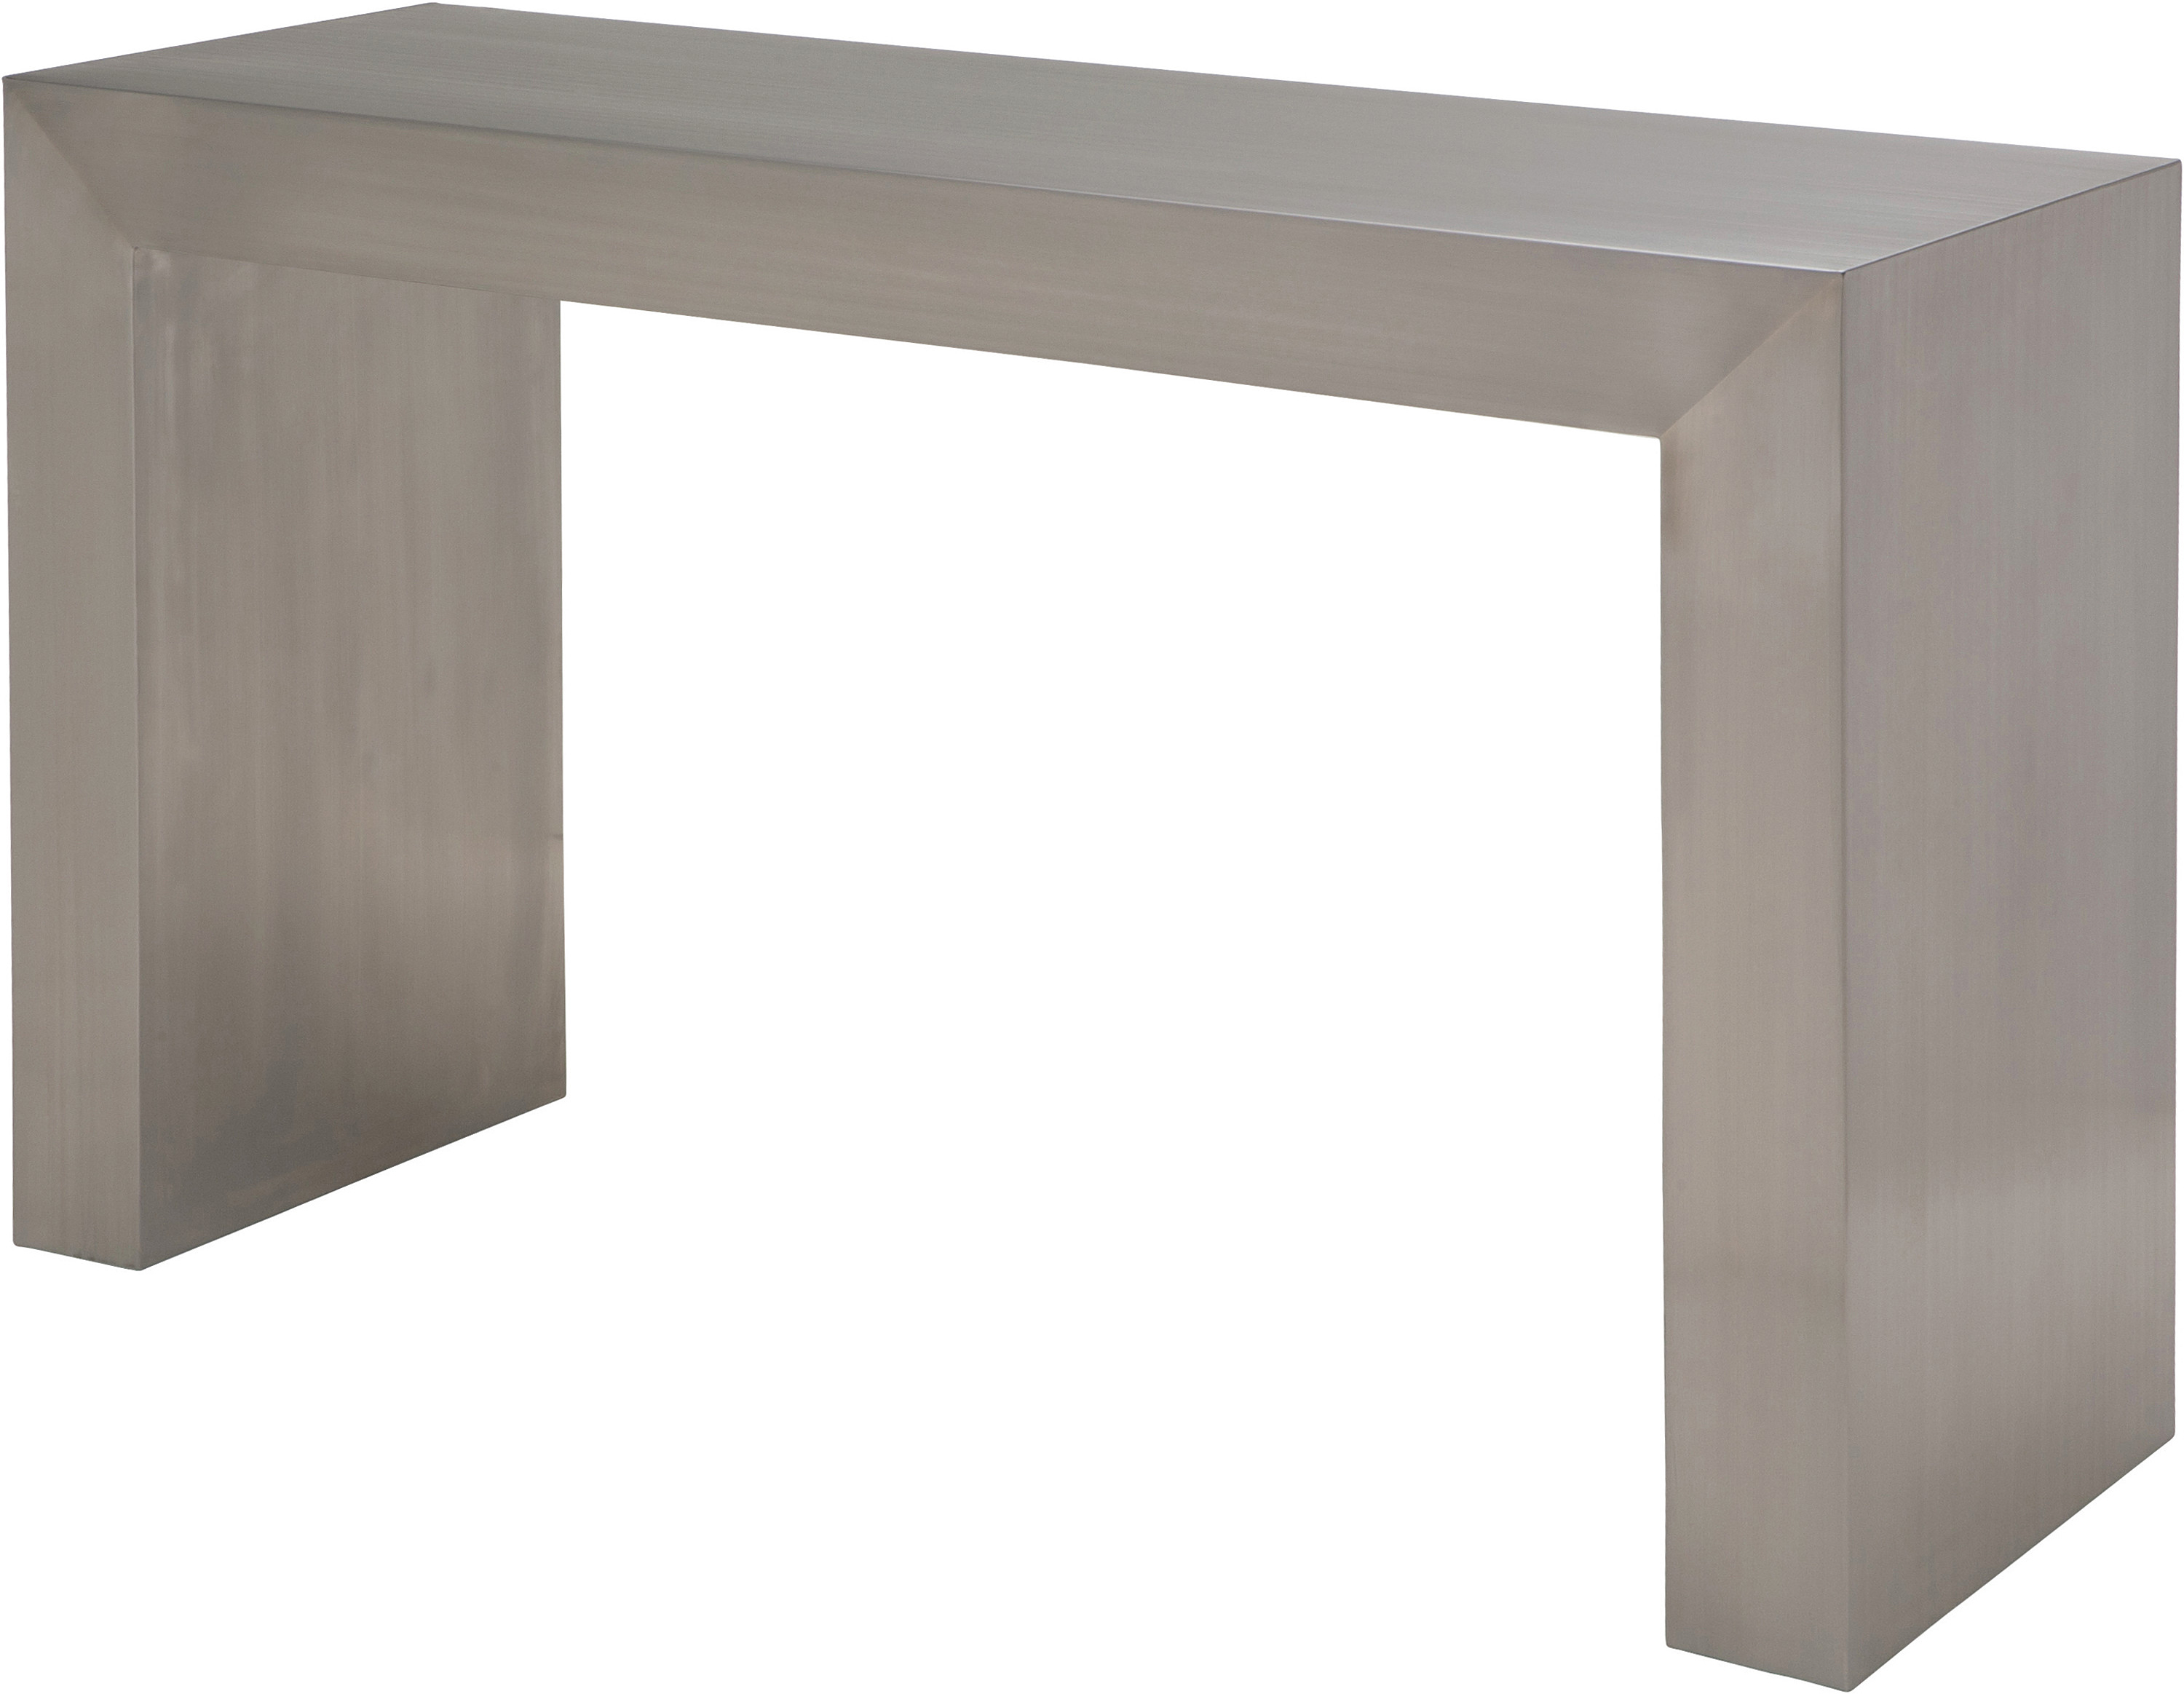 Reese console table modern stainless steel console table geotapseo Gallery